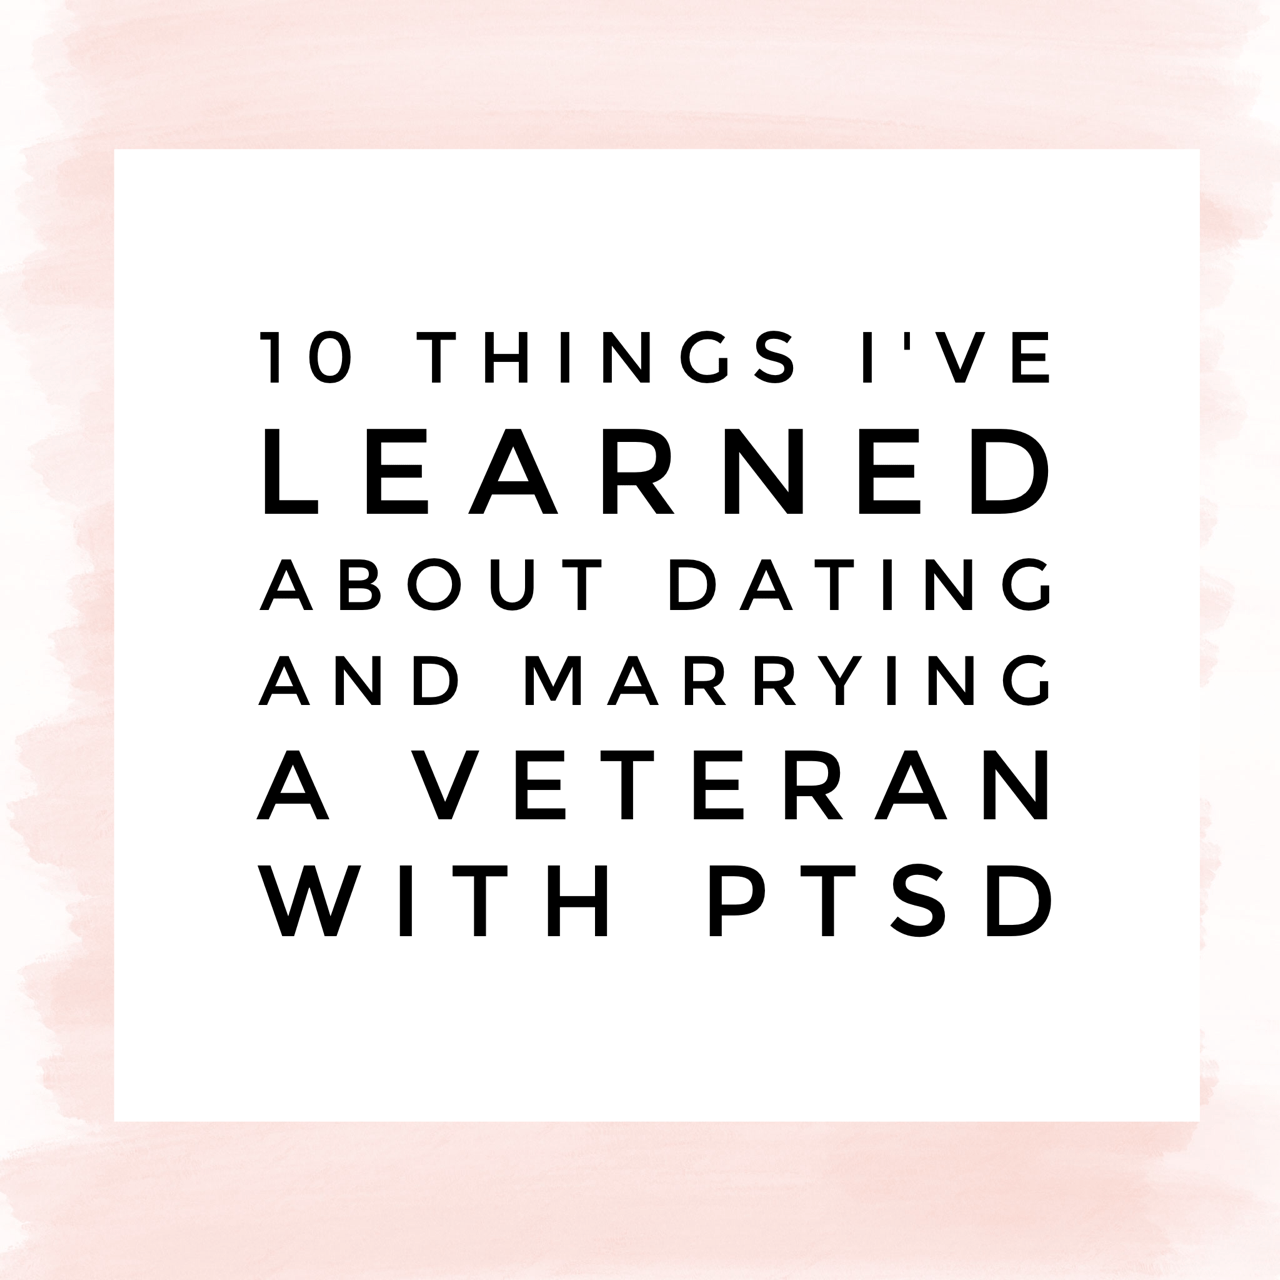 Dating PTSD